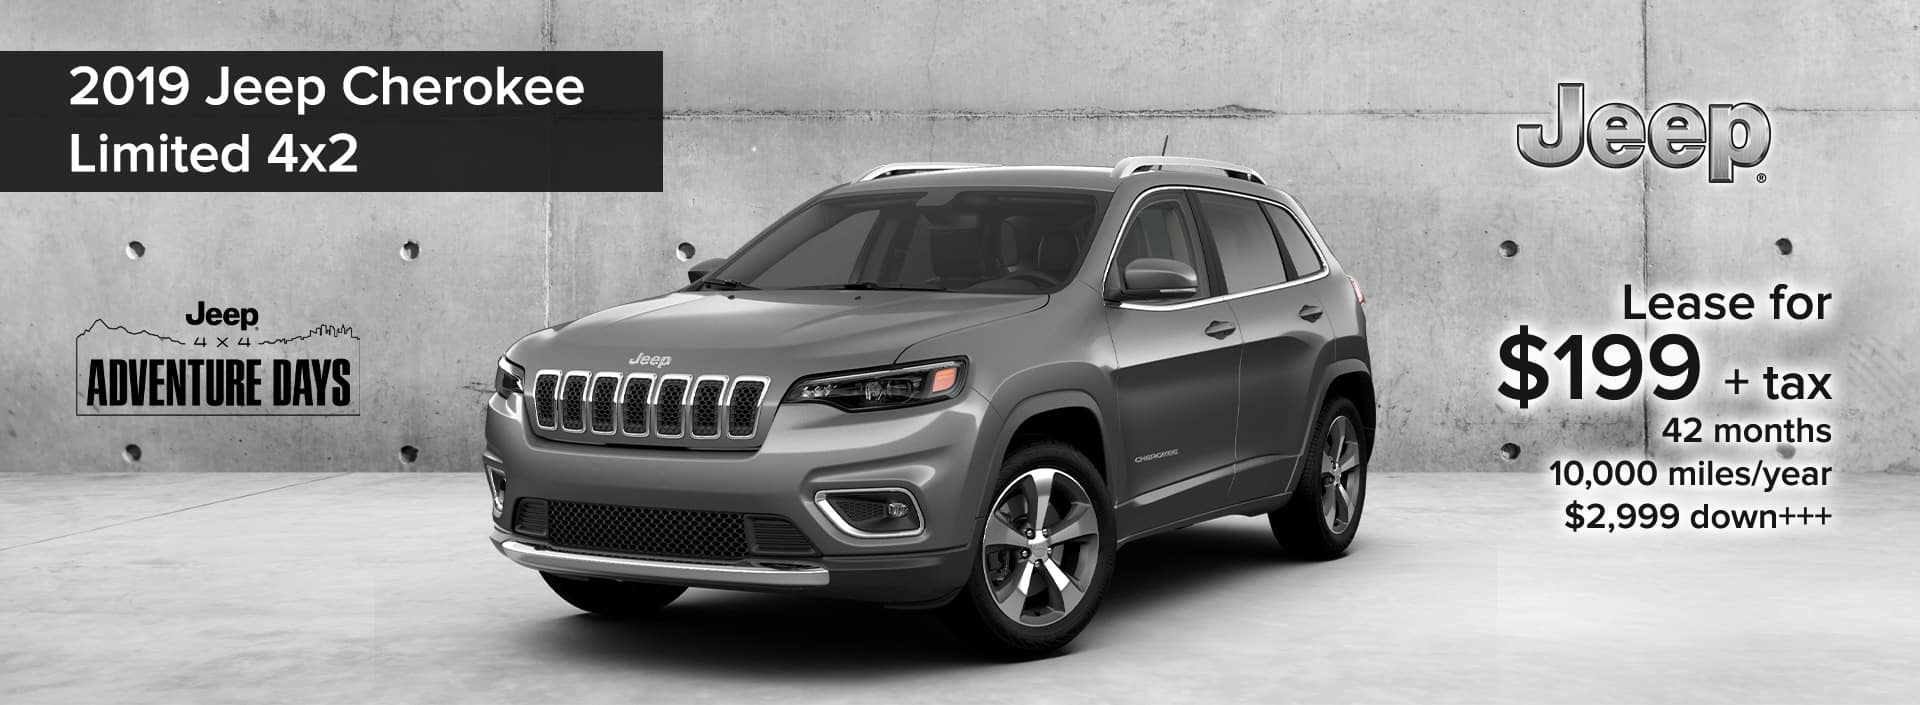 2019 Jeep Cherokee Limited 4x2 Jeep 4x4 Adventure Days Lease deal